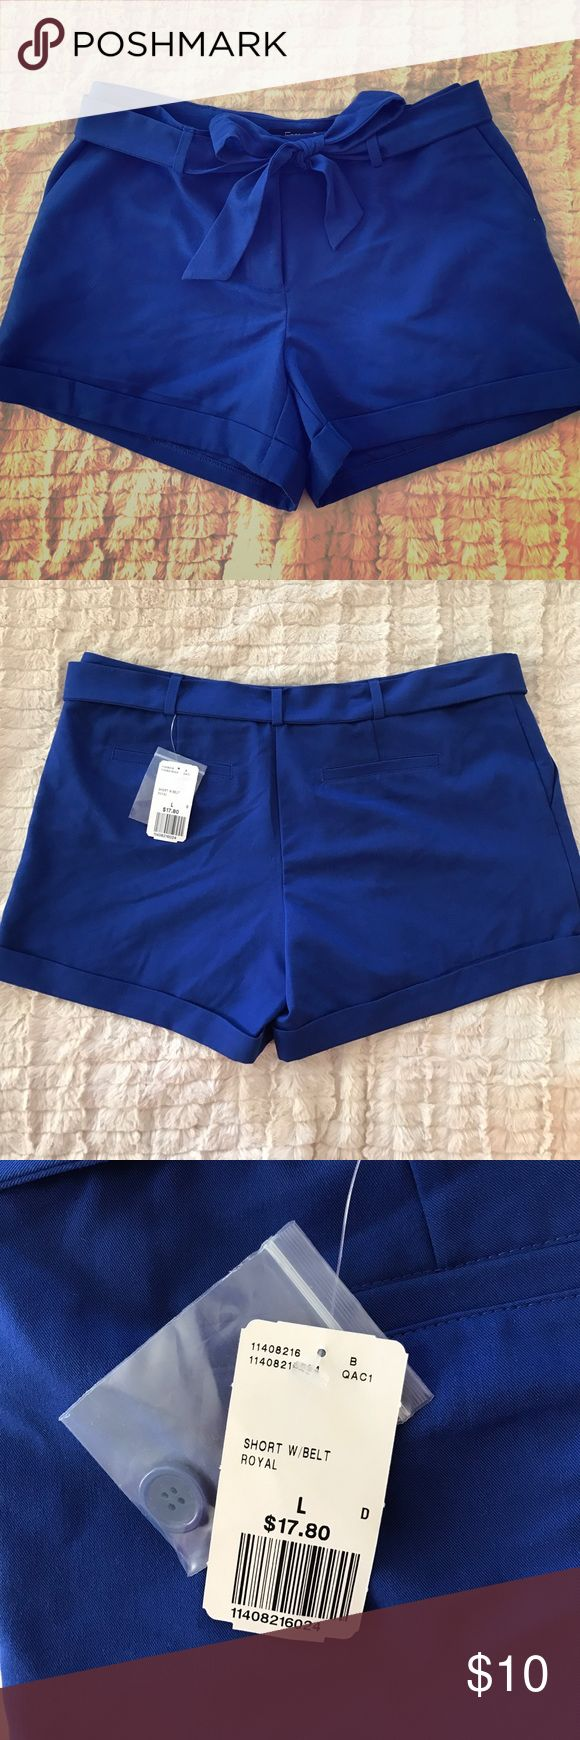 Belted Royal Blue Shorts Belted royal blue shorts from Forever 21. Tags still attached! Forever 21 Shorts